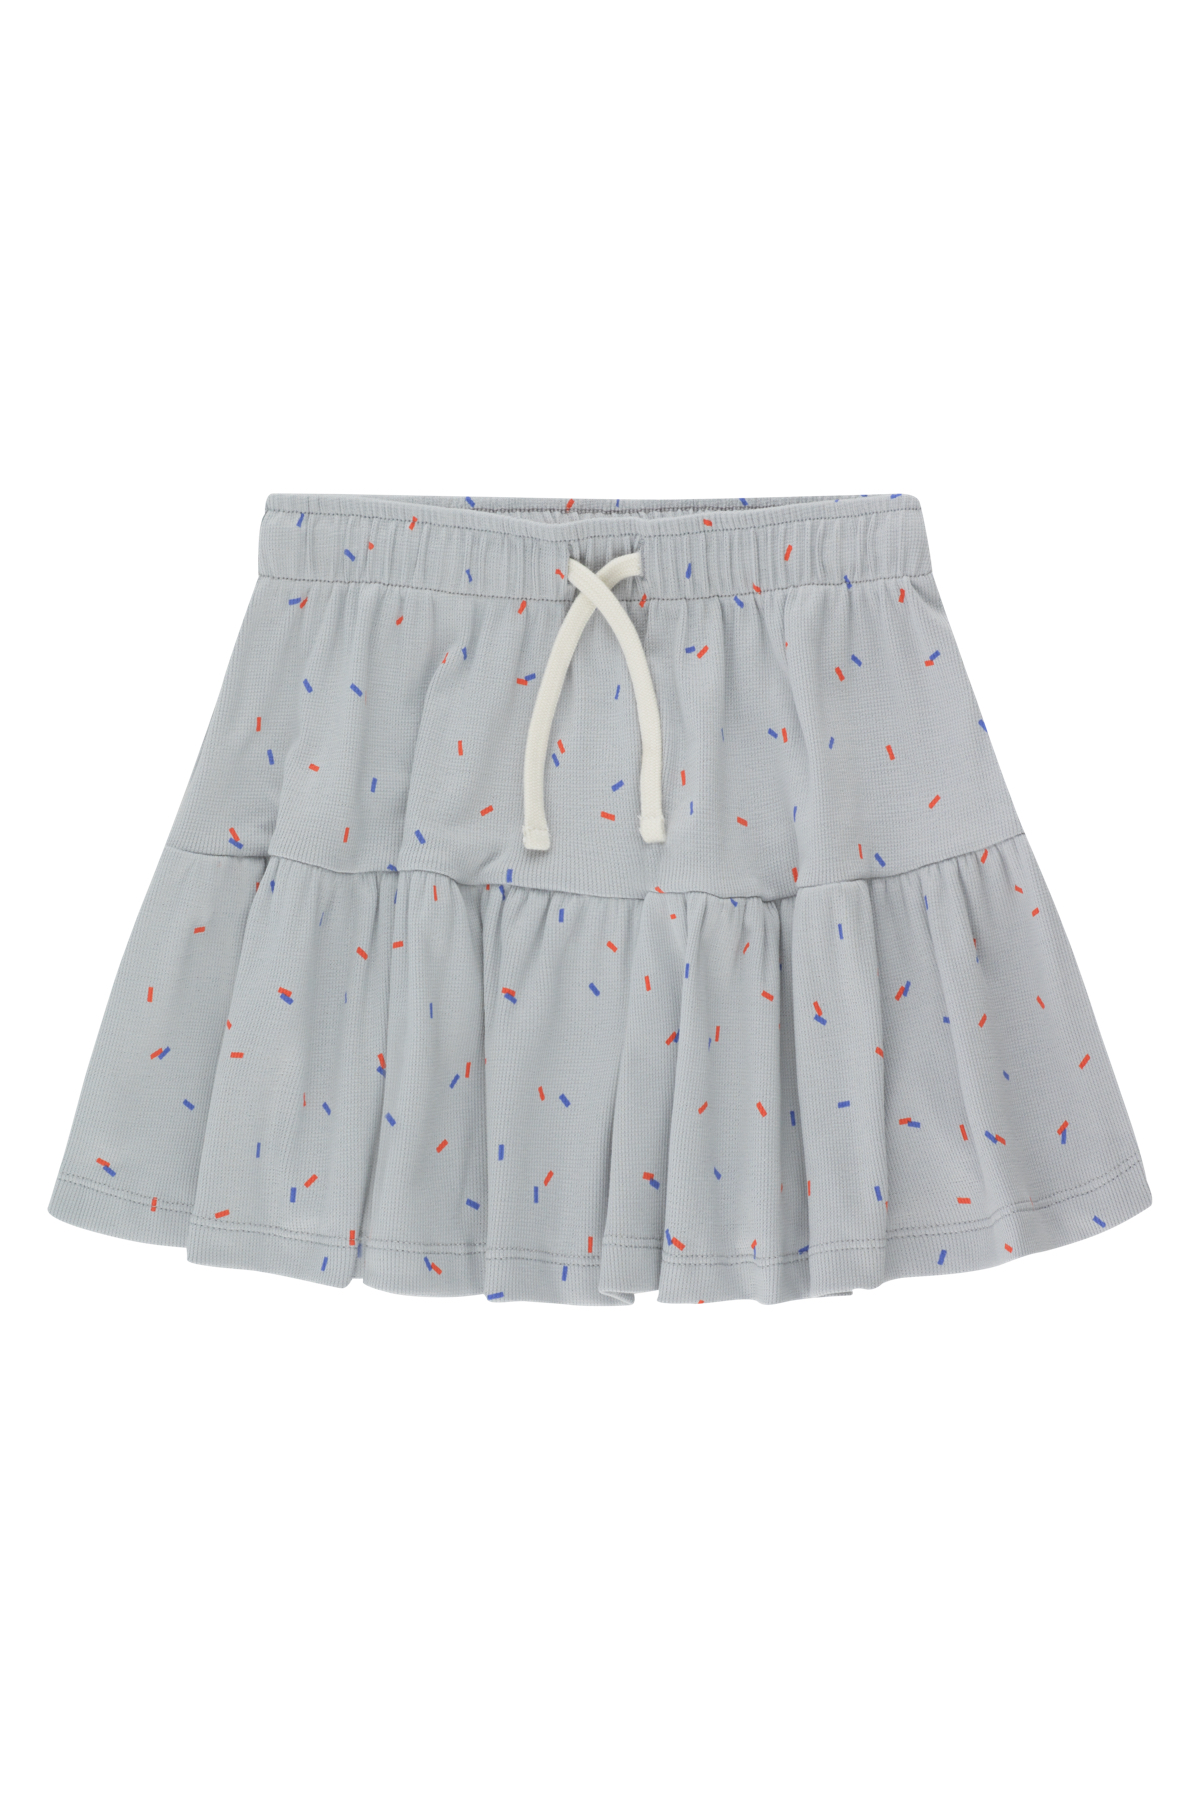 tinycottons sticks short skirt pale grey